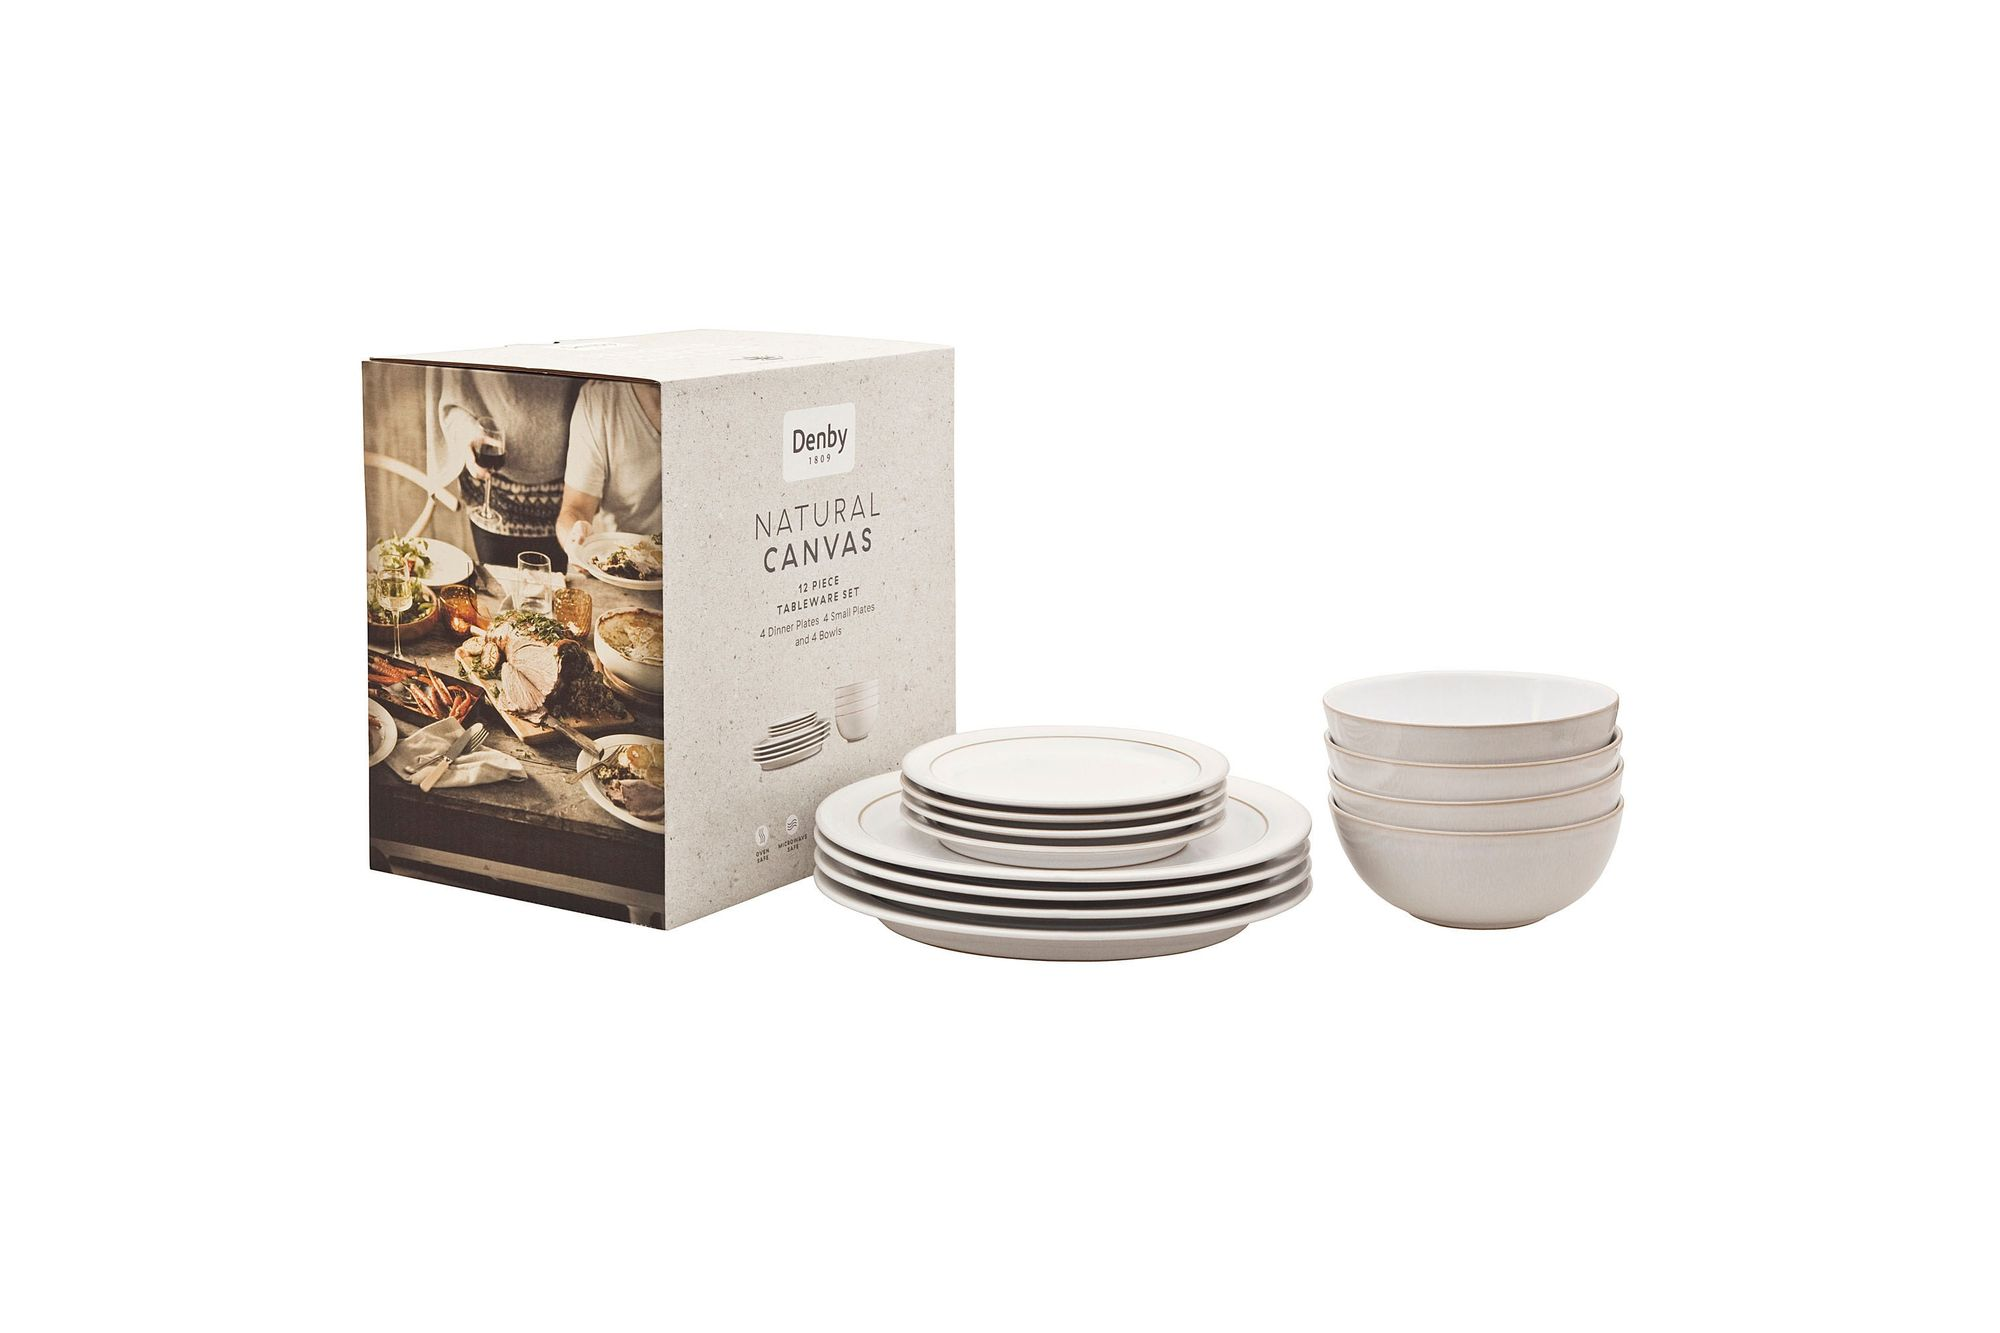 Denby Natural Canvas 12 Piece Set thumb 2